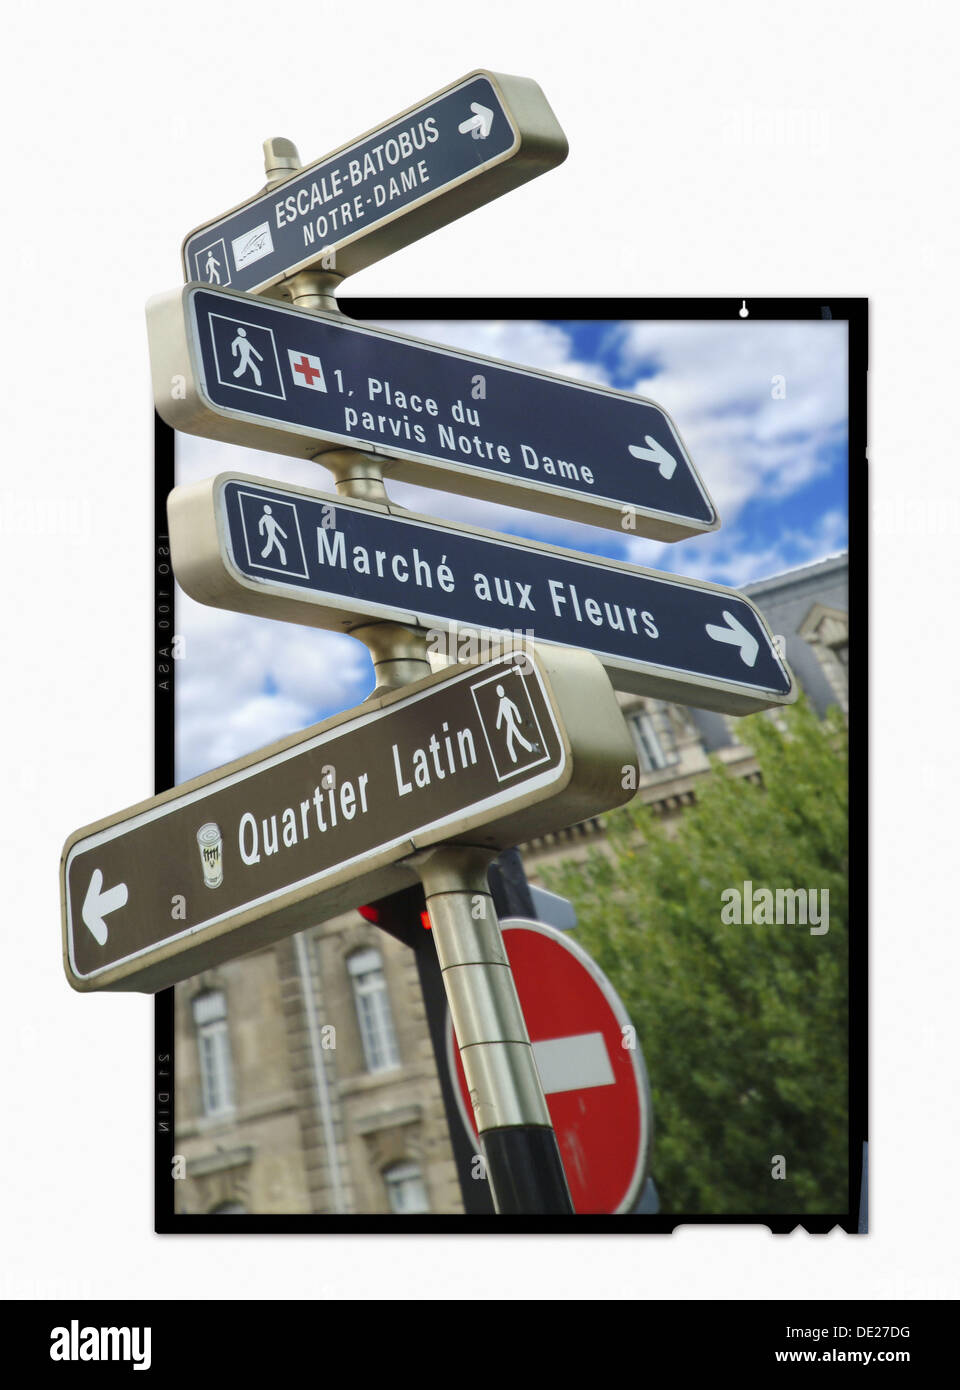 Outer signaling next to rio the Seine in Paris, France, Europa - Stock Image